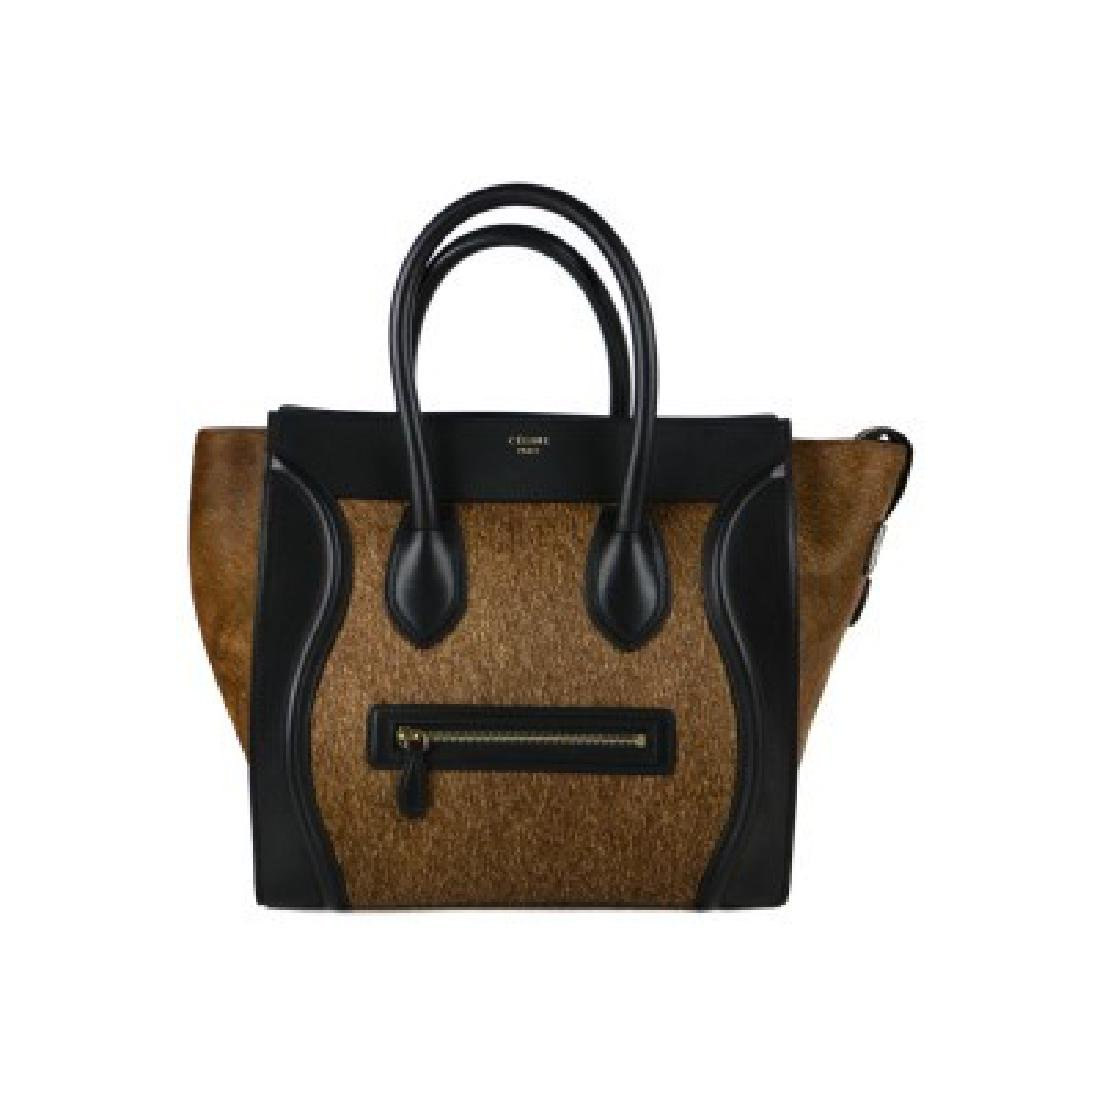 Celine Handbag Luggage Tote Bag